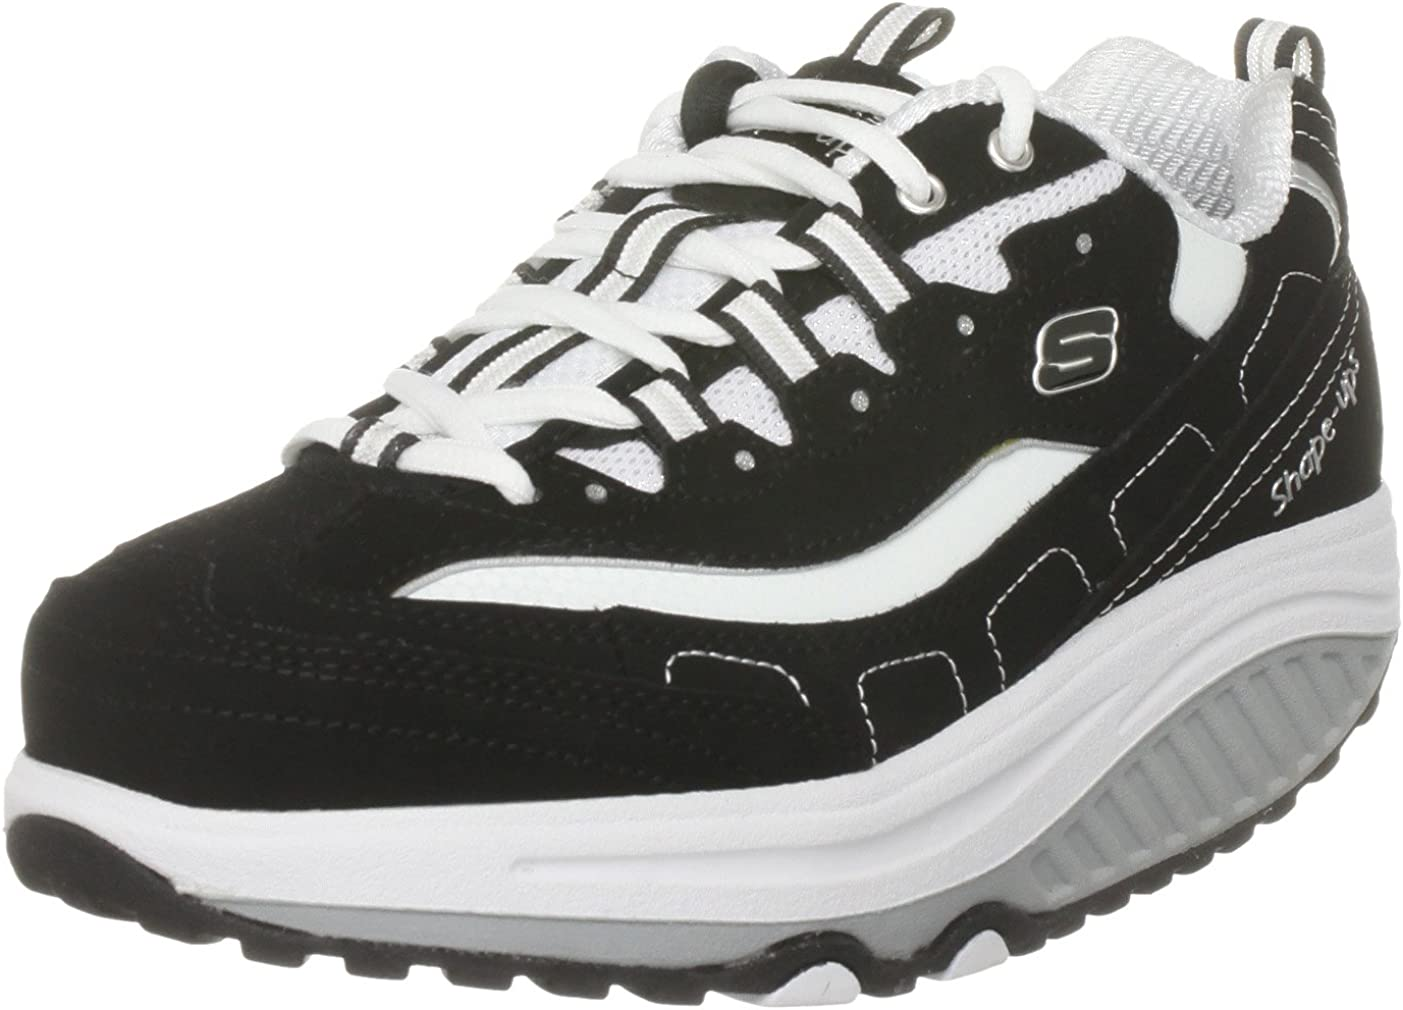 Skechers' claims that its Shape ups